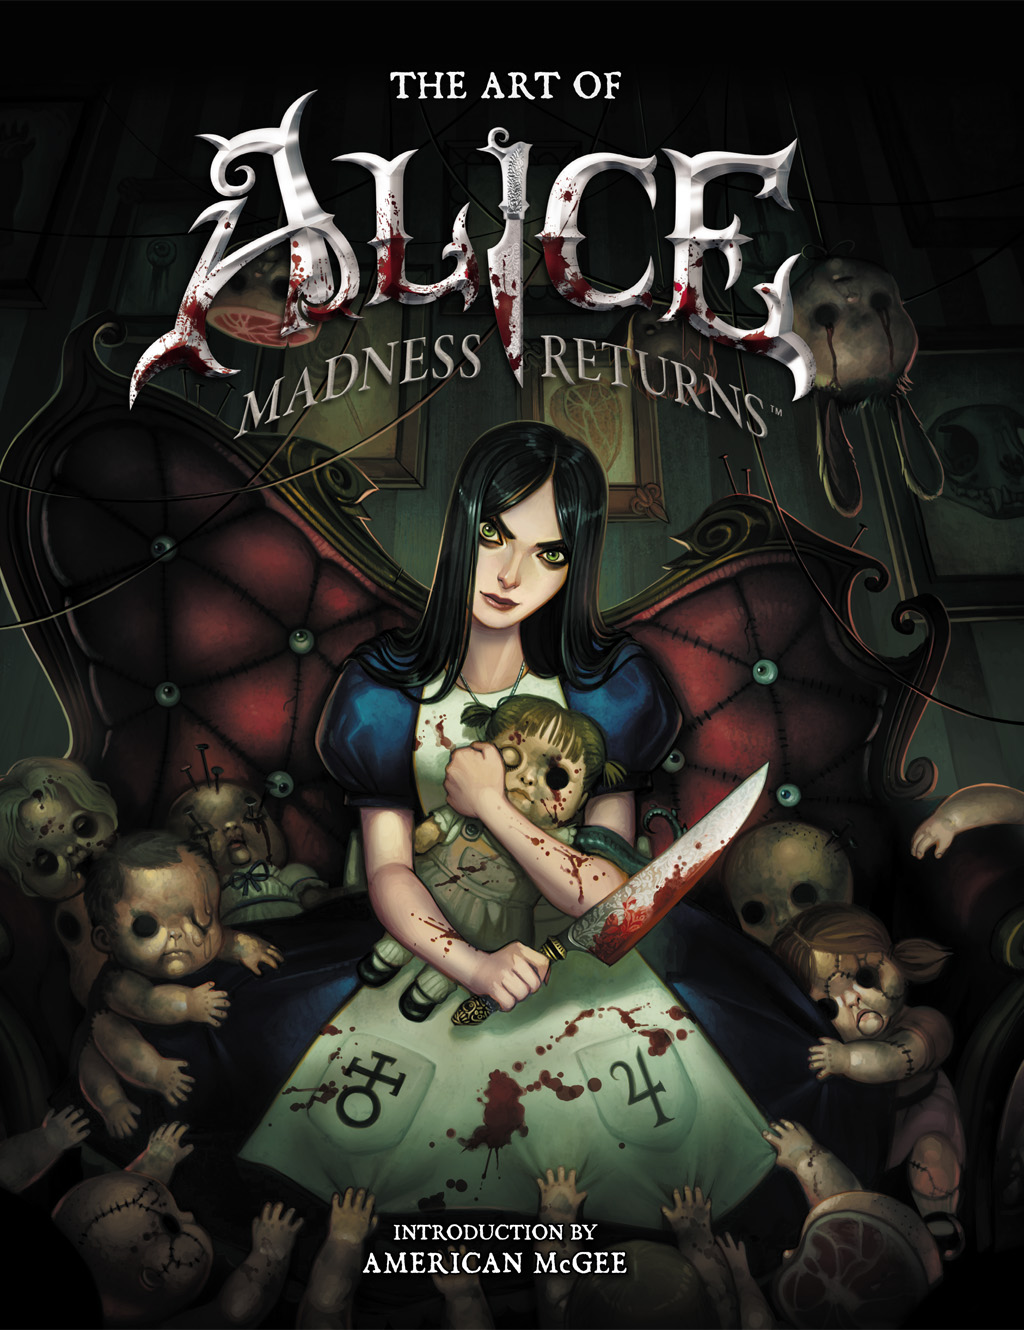 The_Art_of_Alice_Madness_Returns_000_cover.jpg